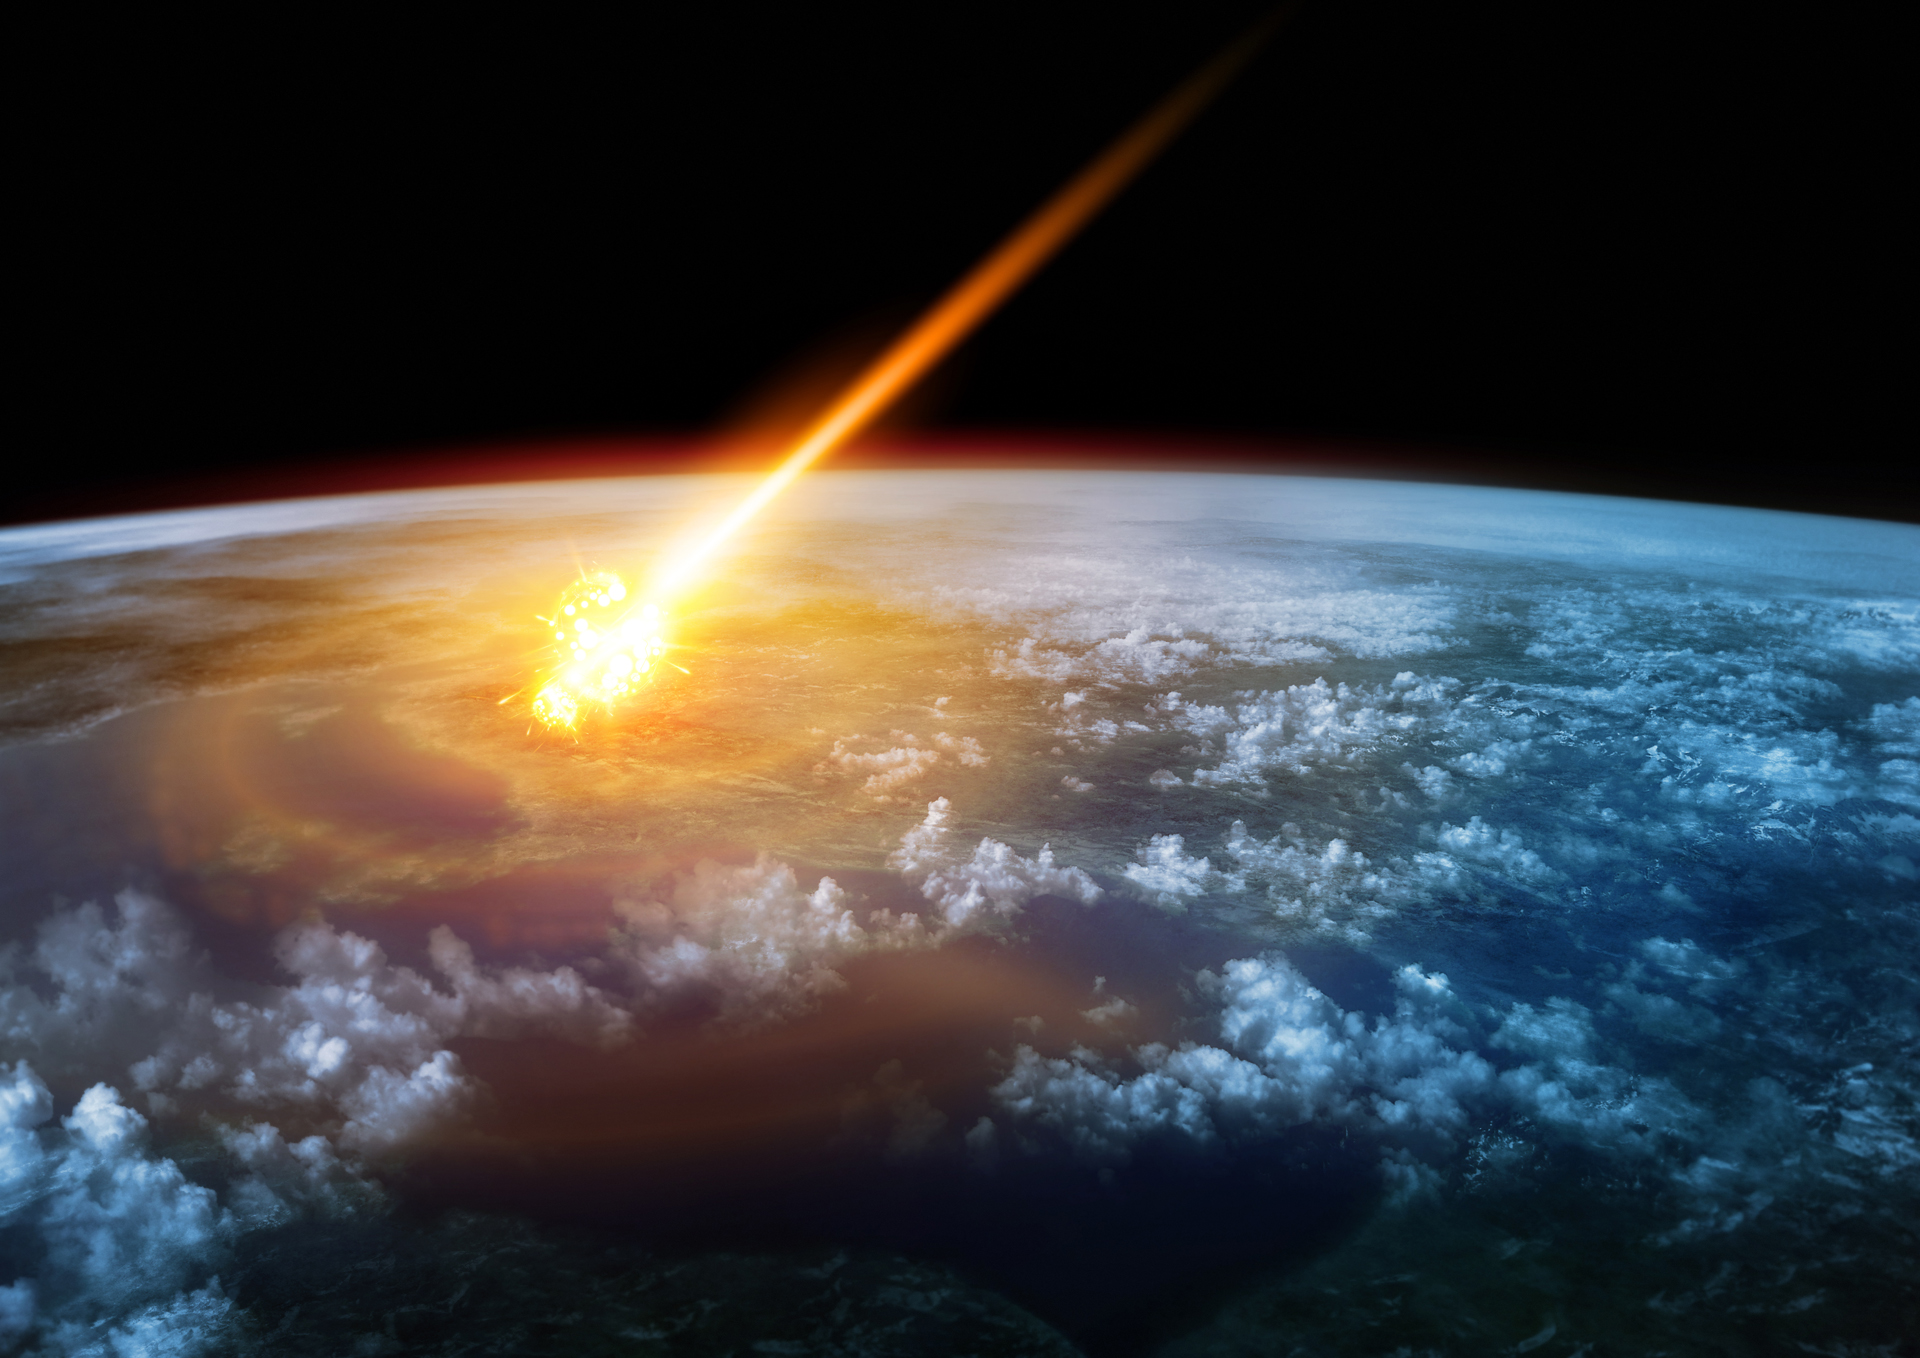 Asteroids have been crushing Earth for nearly 300 million years and no one knows why